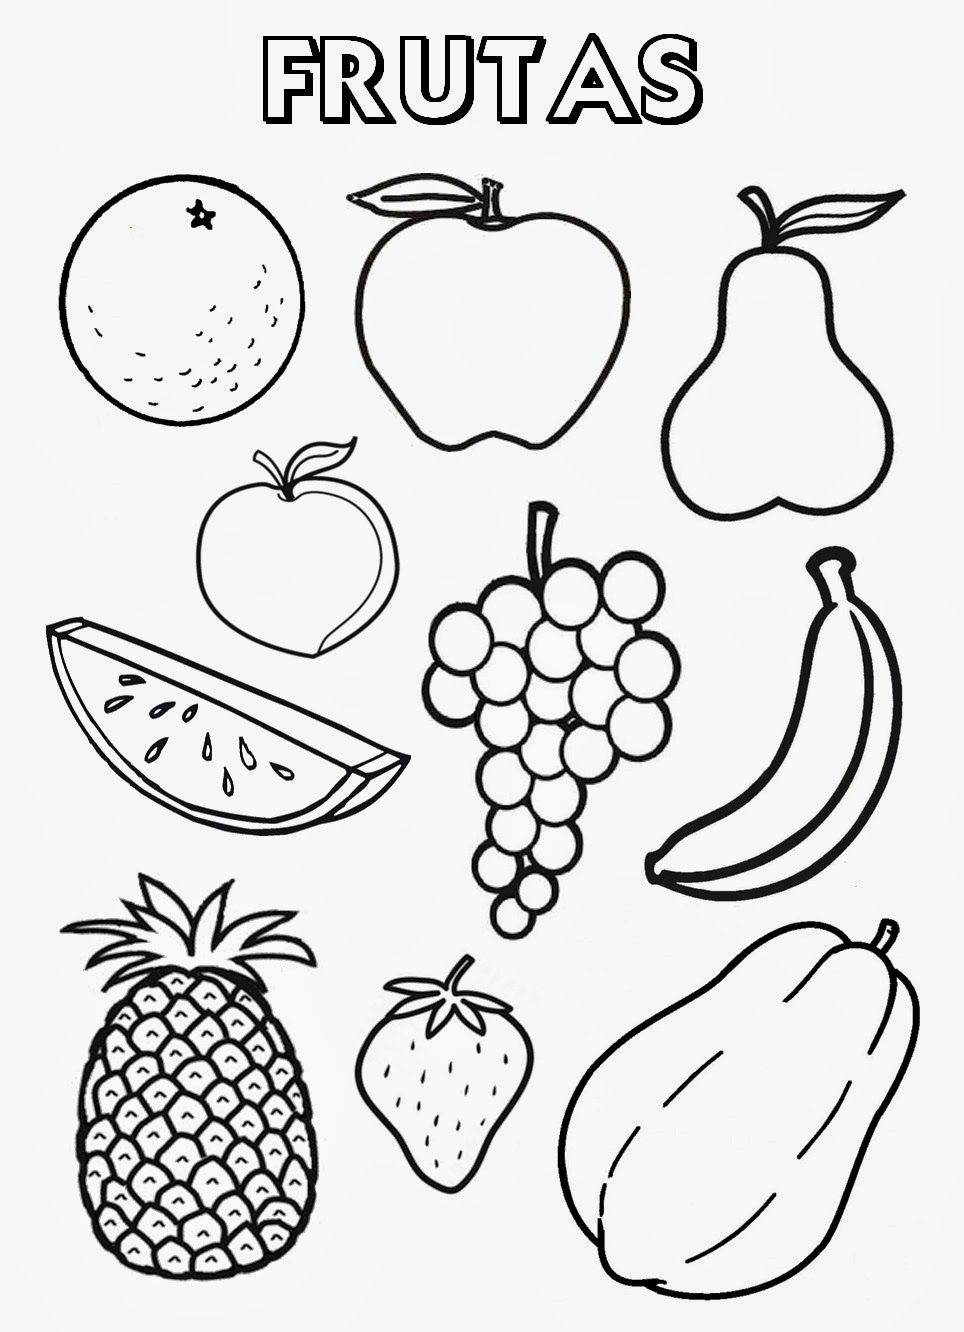 Frutas Yverduras Para Colorear Imagui Fruit Coloring Pages Fruits Drawing Coloring Pages